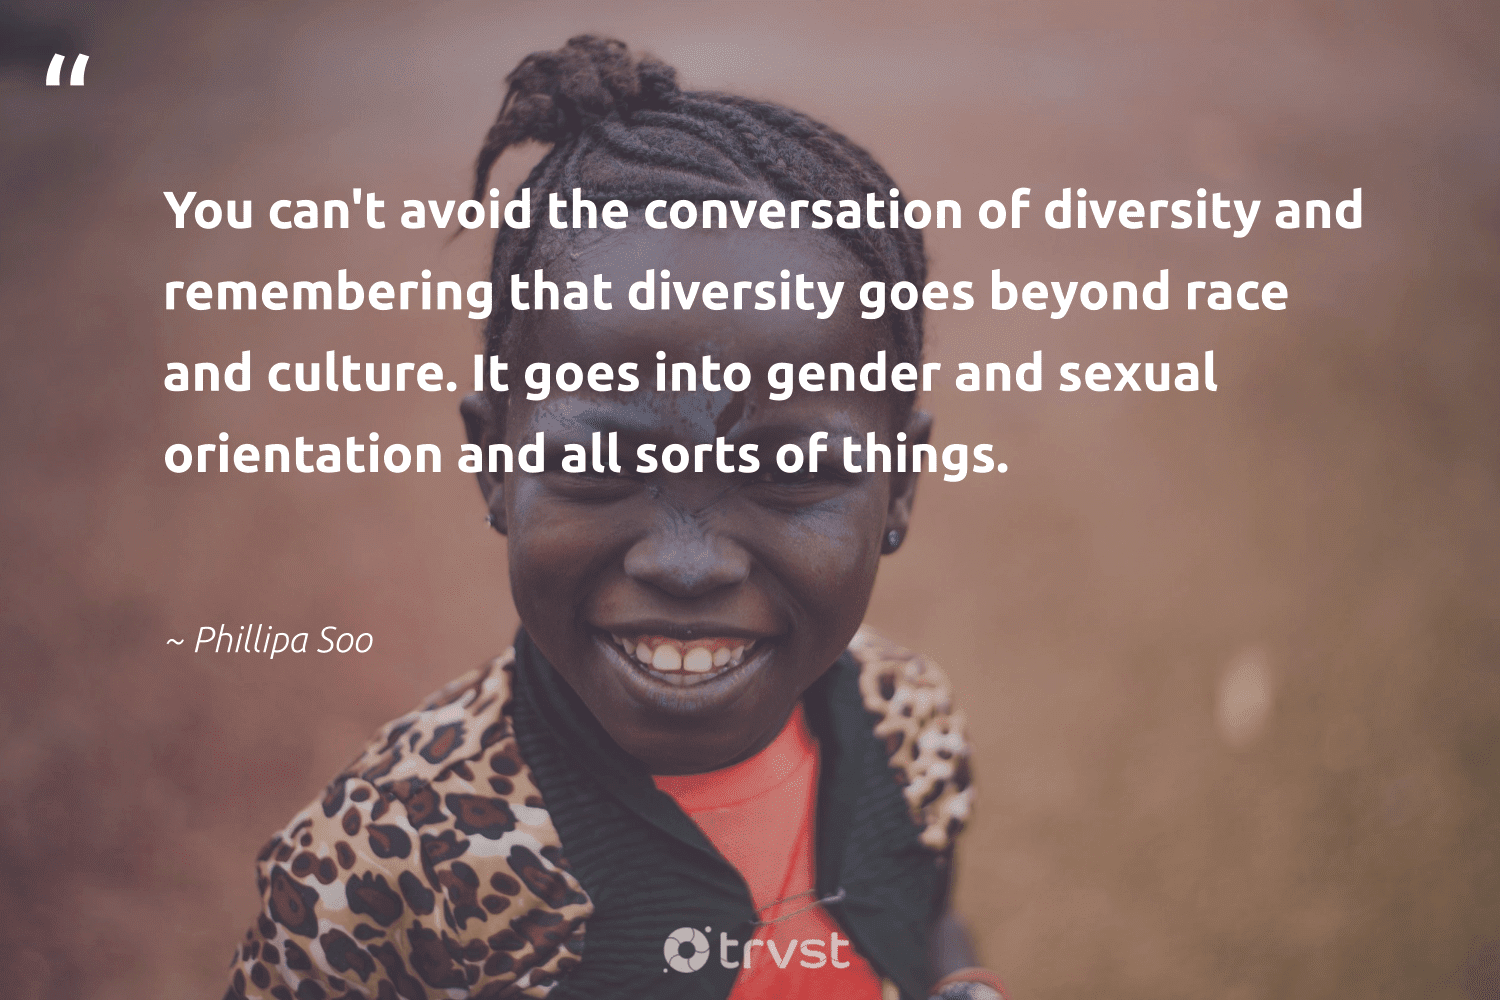 """""""You can't avoid the conversation of diversity and remembering that diversity goes beyond race and culture. It goes into gender and sexual orientation and all sorts of things.""""  - Phillipa Soo #trvst #quotes #diversity #gender #inclusion #discrimination #makeadifference #bethechange #gogreen #representationmatters #socialchange #giveback"""